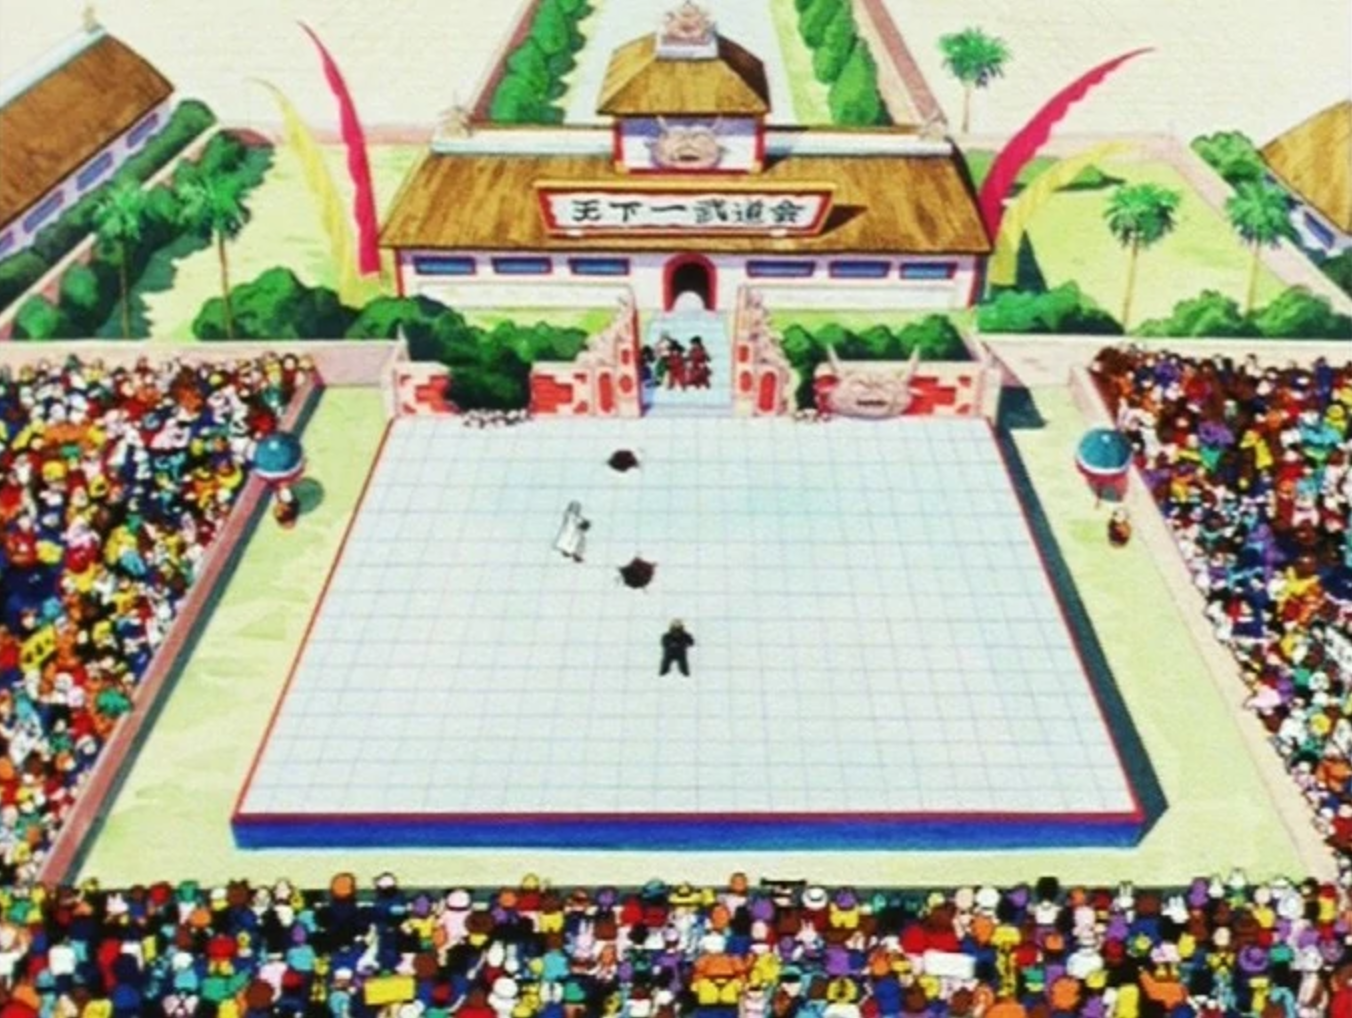 A picture of the Worlds Martial Arts Tournament in Dragon Ball Z